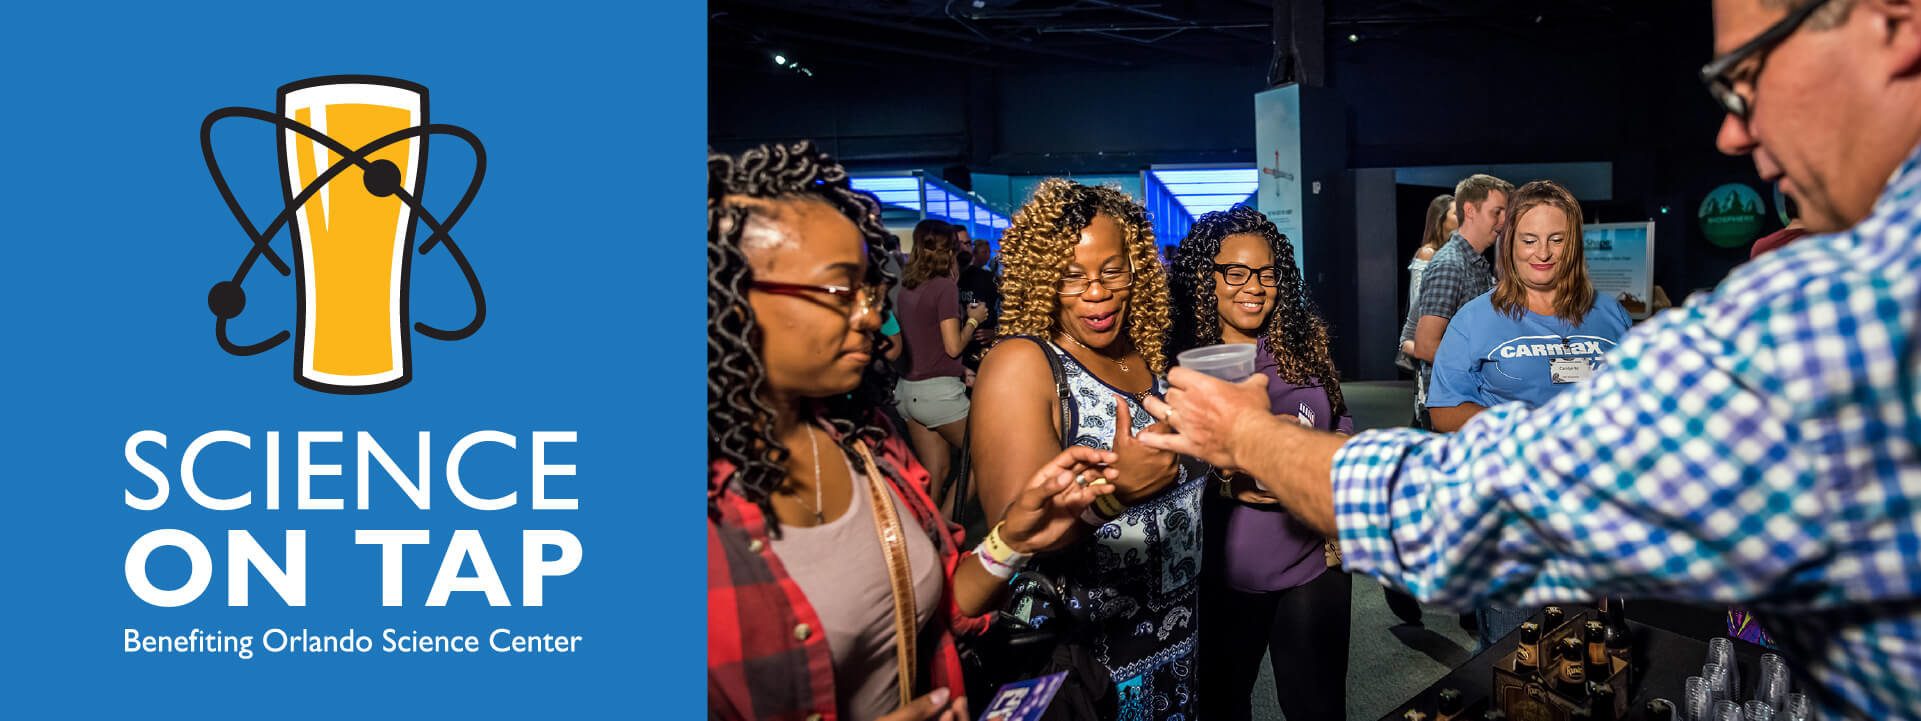 Science on Tap – Benefiting Orlando Science Center